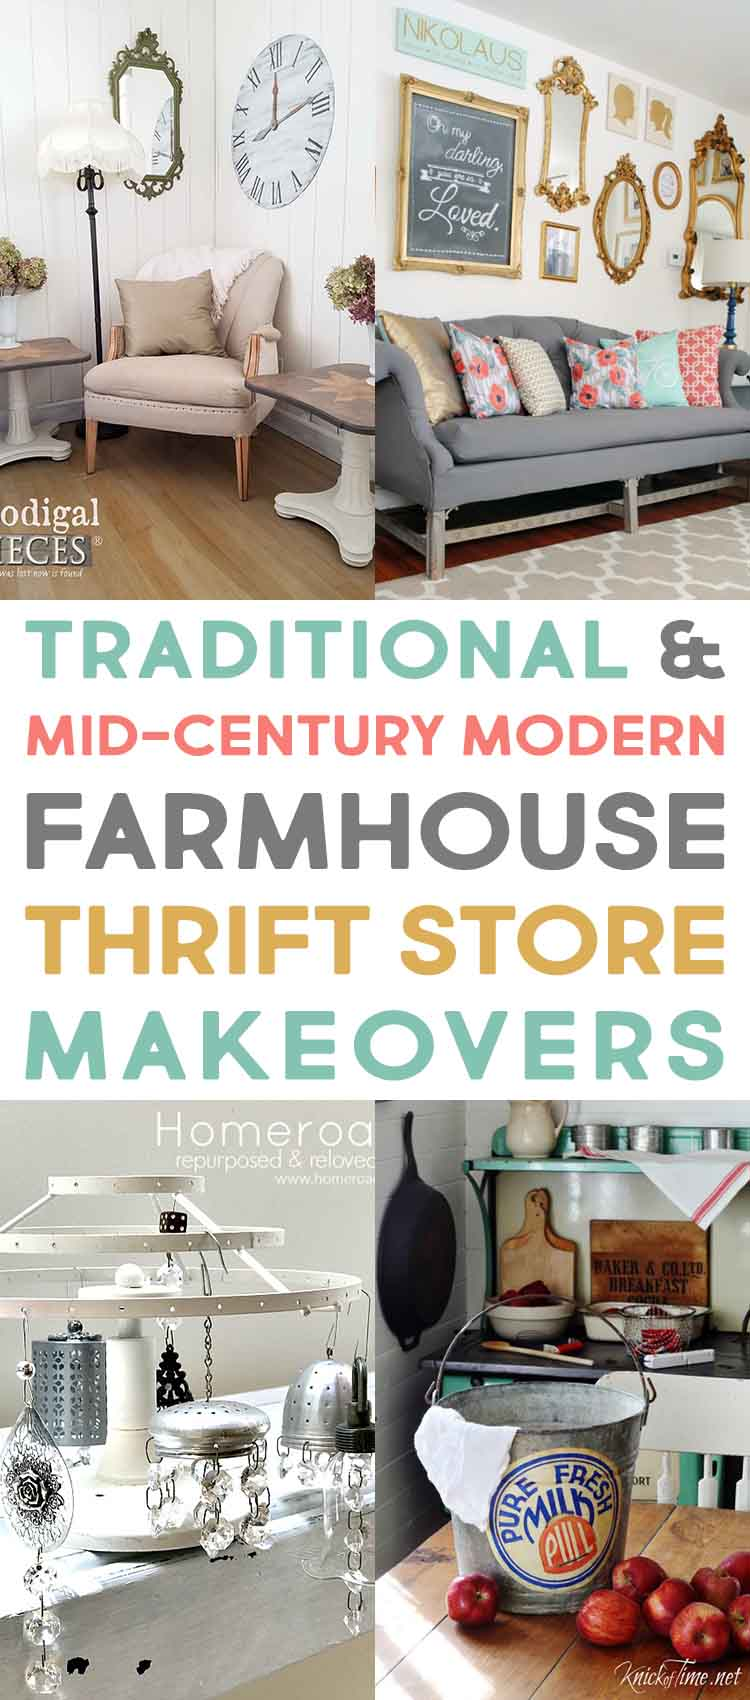 Check out these thrift store makeovers for traditional and mid-century modern inspiration.